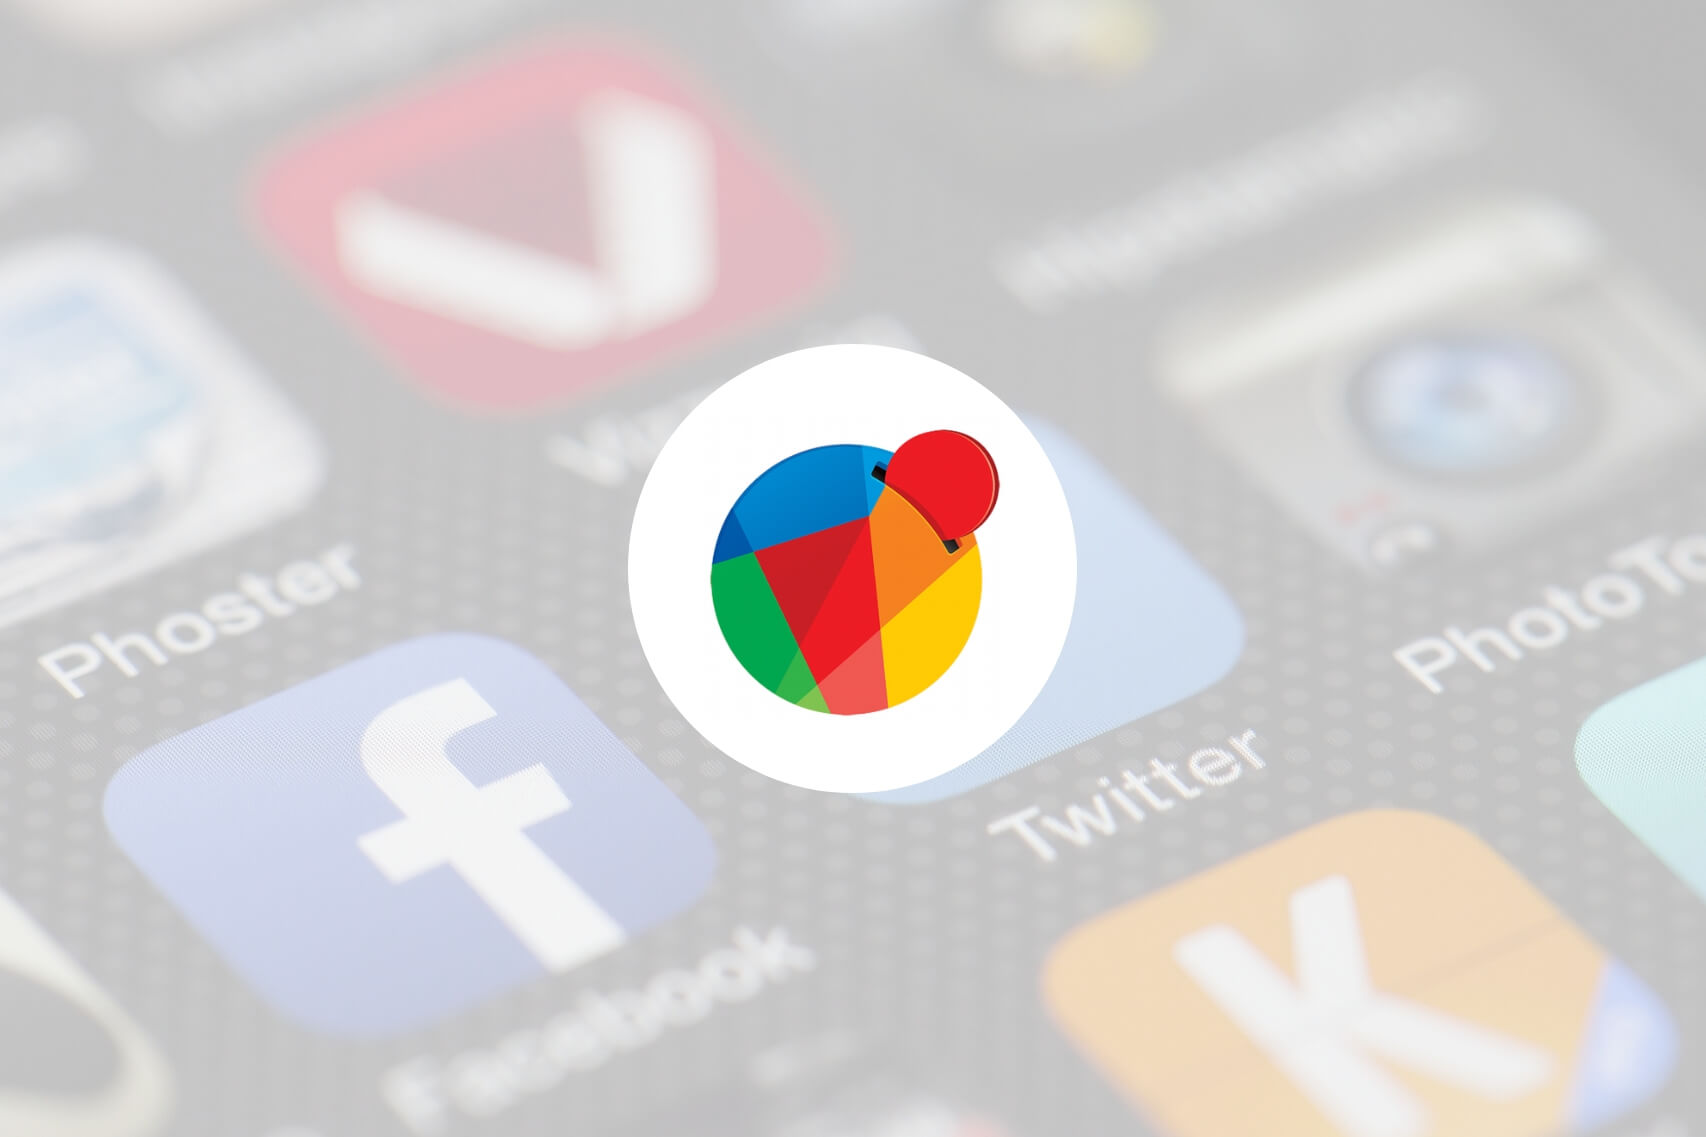 What is Reddcoin?